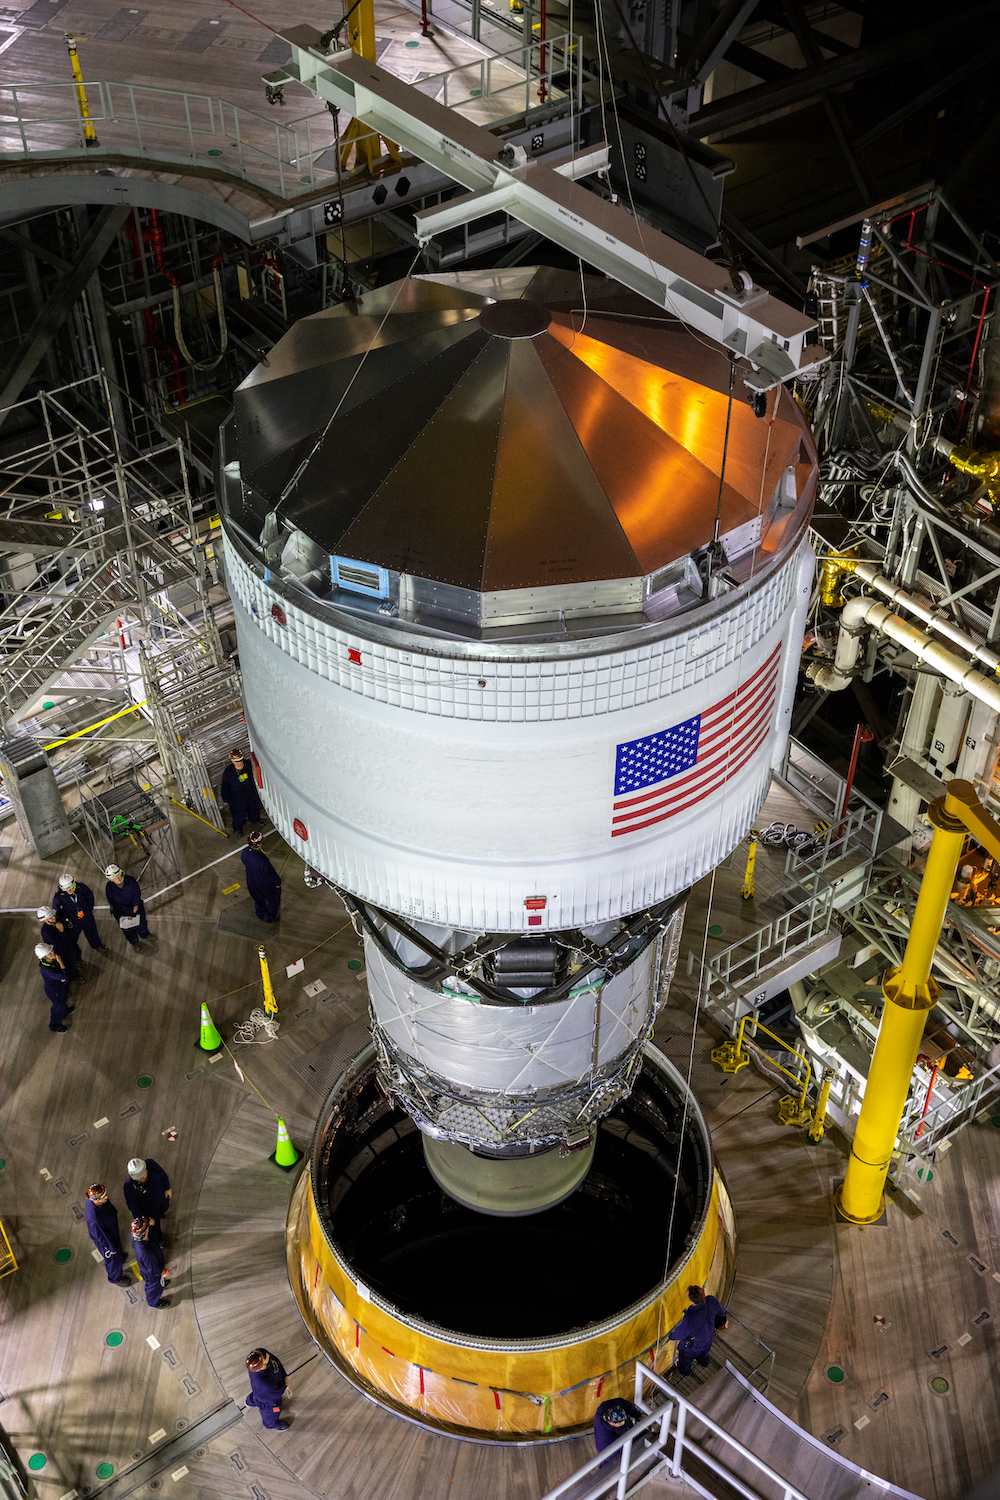 The Interim Cryogenic Propulsion Stage (ICPS) for NASA's Space Launch System (SLS) rocket with the launch vehicle stage adapter (LVSA) is integrated atop the SLS core stage. Photo by NASA